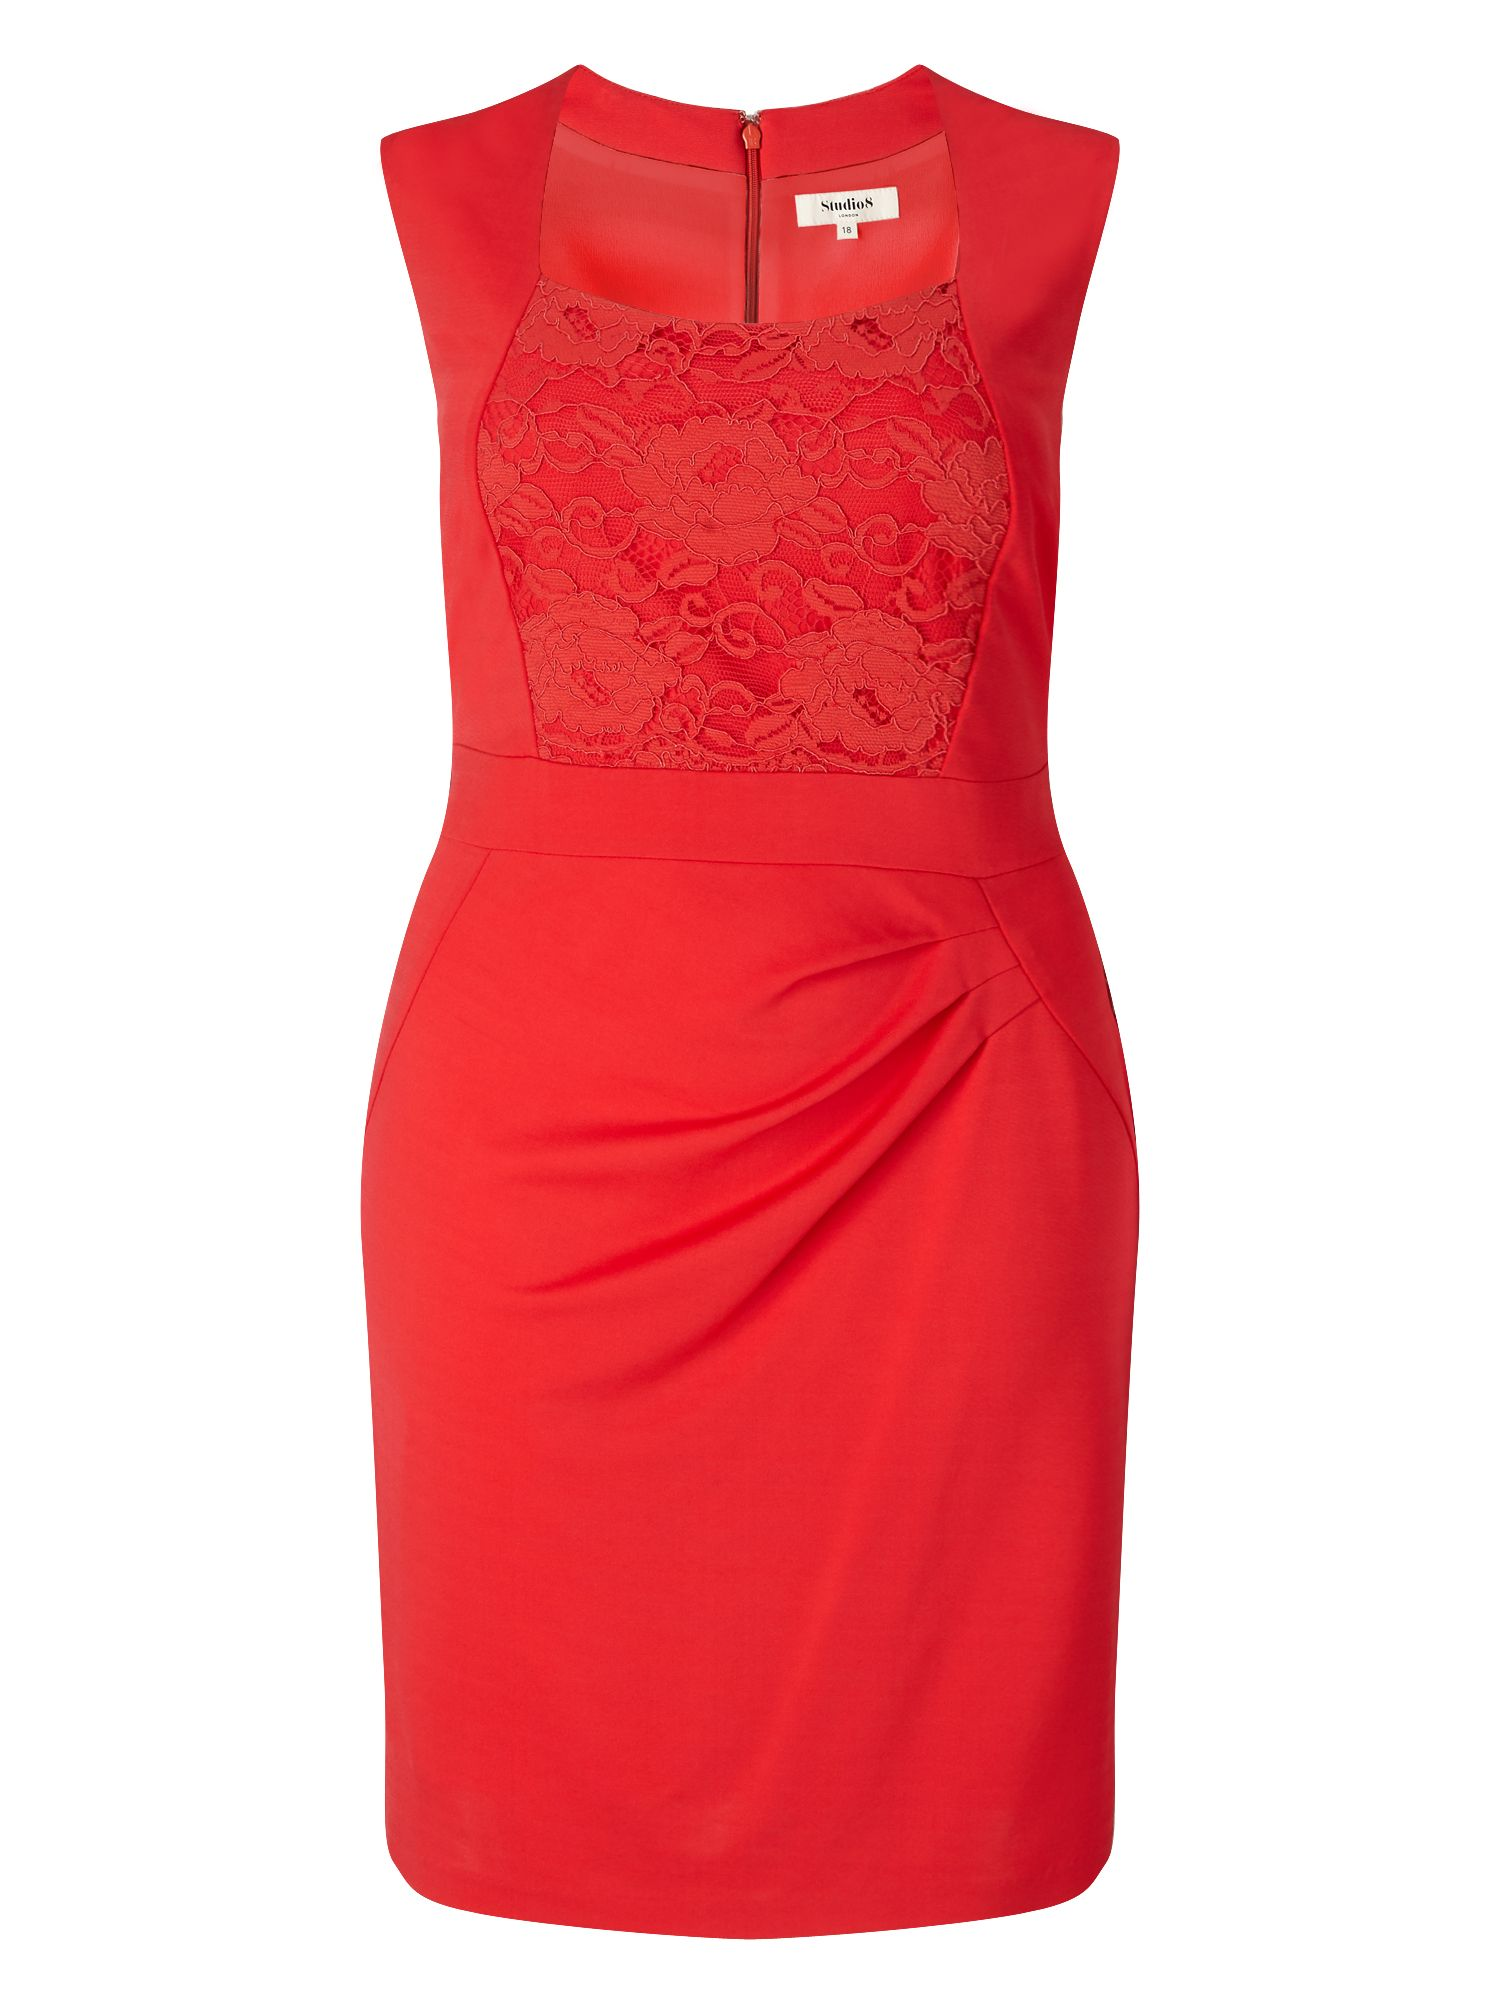 Studio 8 Denver Dress, Red